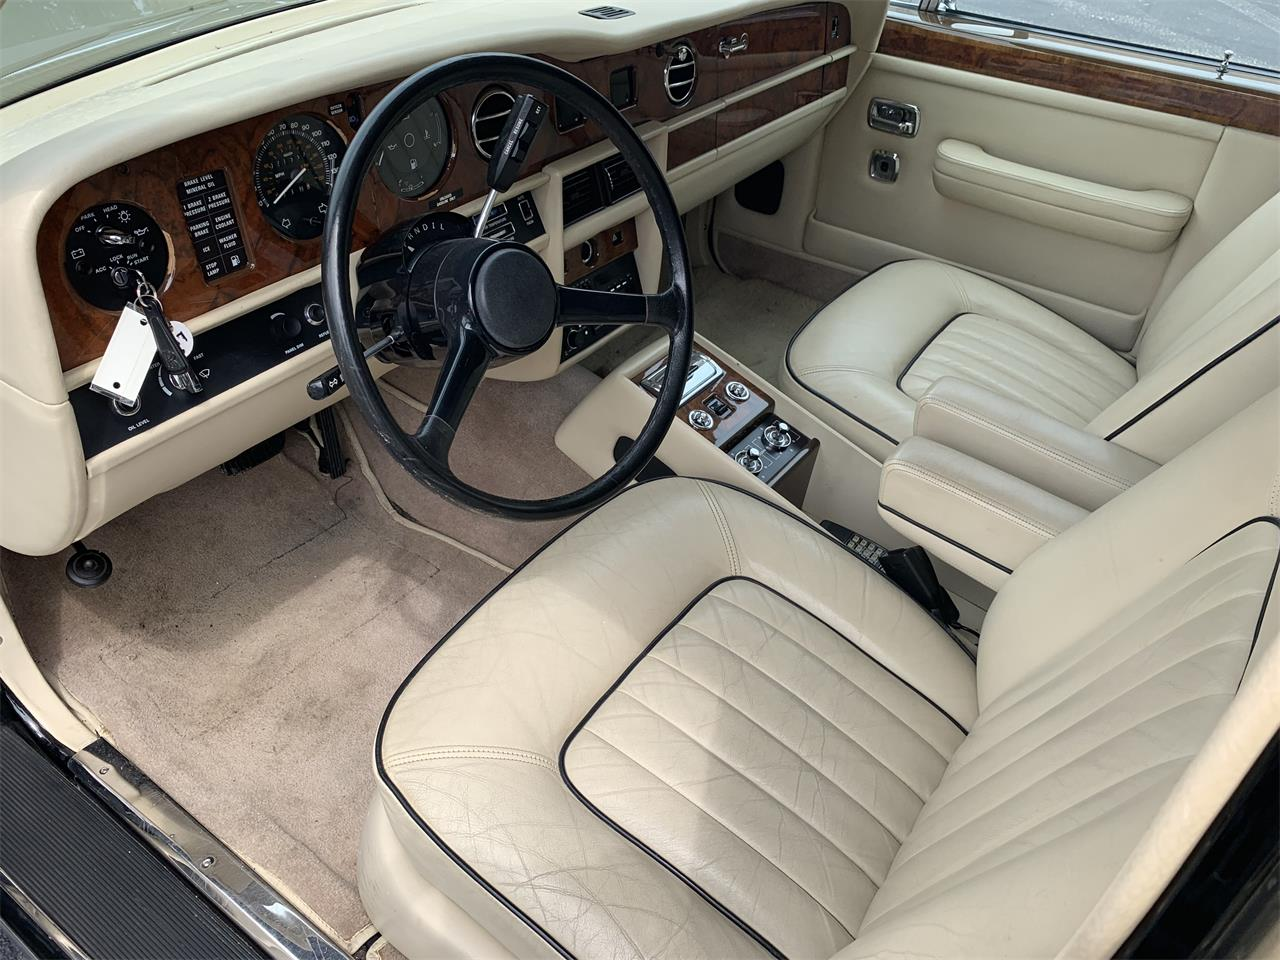 Large Picture of '87 Rolls-Royce Silver Spur located in BOCA RATON Florida - $65,000.00 Offered by European Autobody, Inc. - PTZU